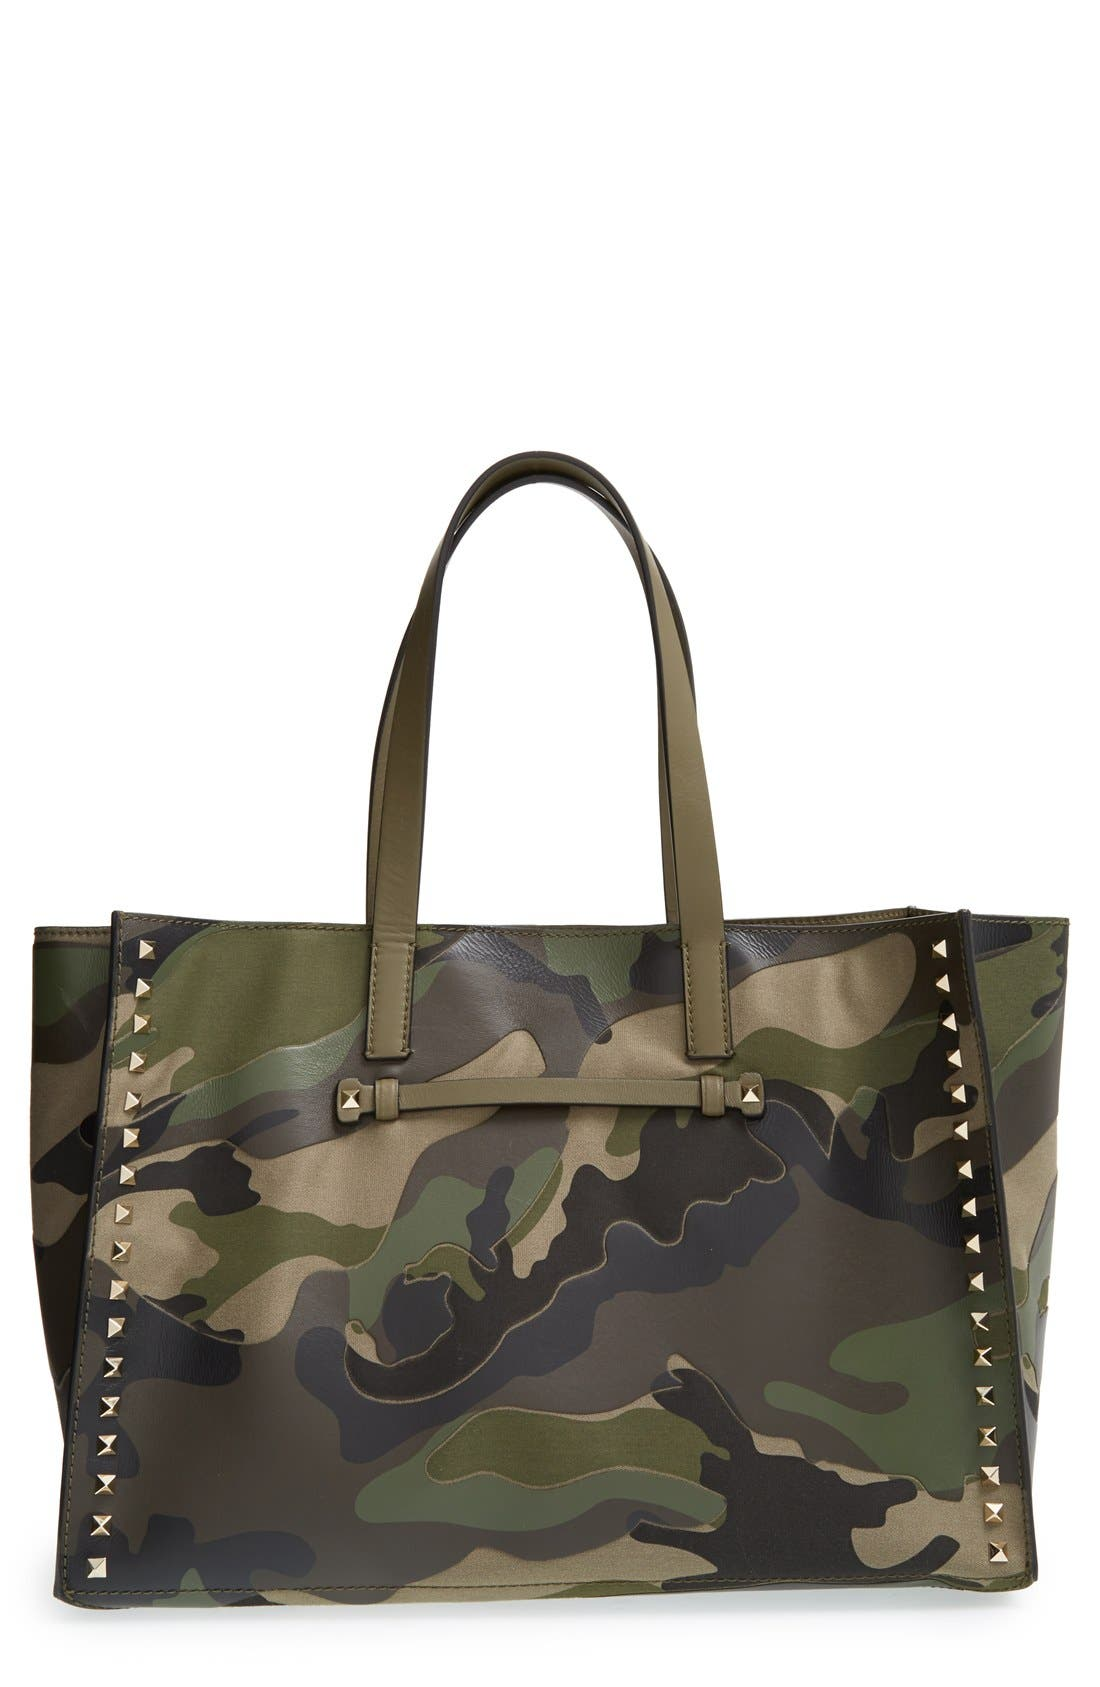 Alternate Image 1 Selected - Valentino Rockstud Canvas & Leather Camo Tote